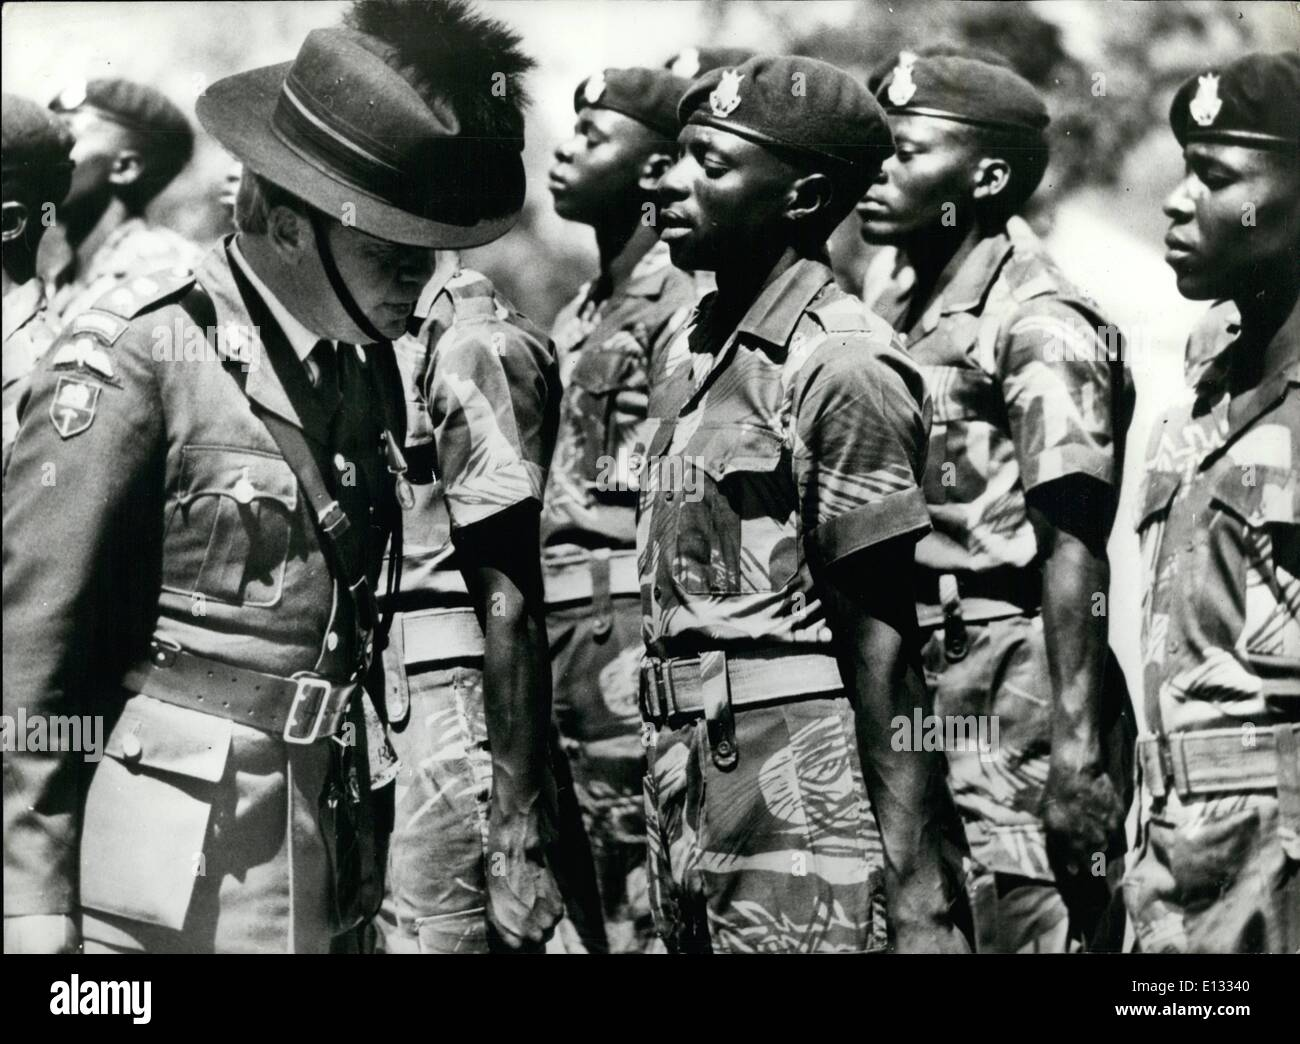 Feb. 26, 2012 - April 1980 Final passing out parade of Rhodesian African rifles. Col. McKenna inspecting the parade of Rhodesian African Rifles at the Shaw Barracks, Bulawayo. At the last passing-out parade before they are integrated into the new Zimbabwe Army. - Stock Image